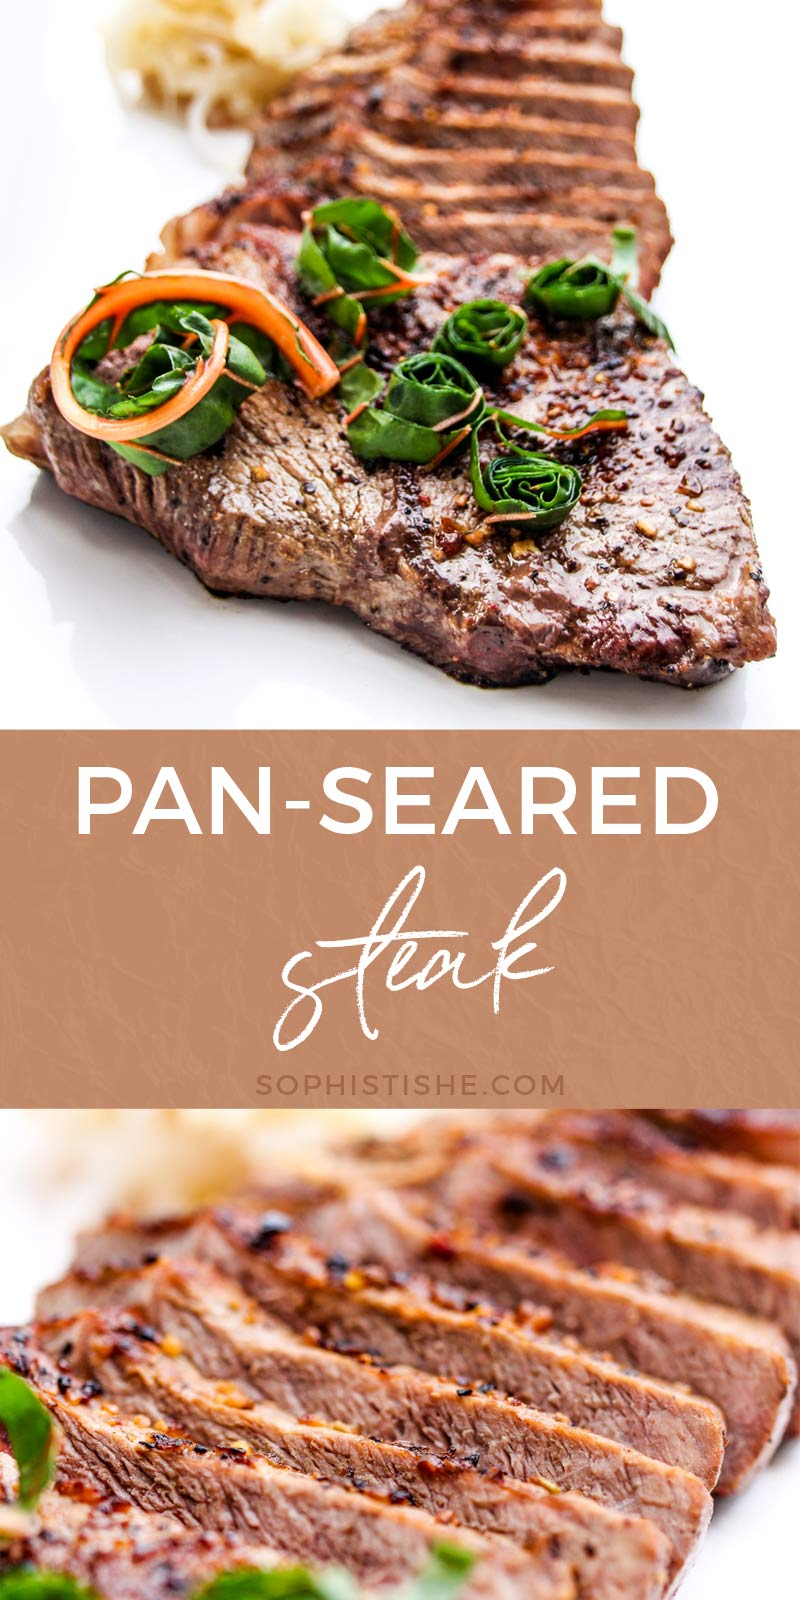 Pan-Seared Steak